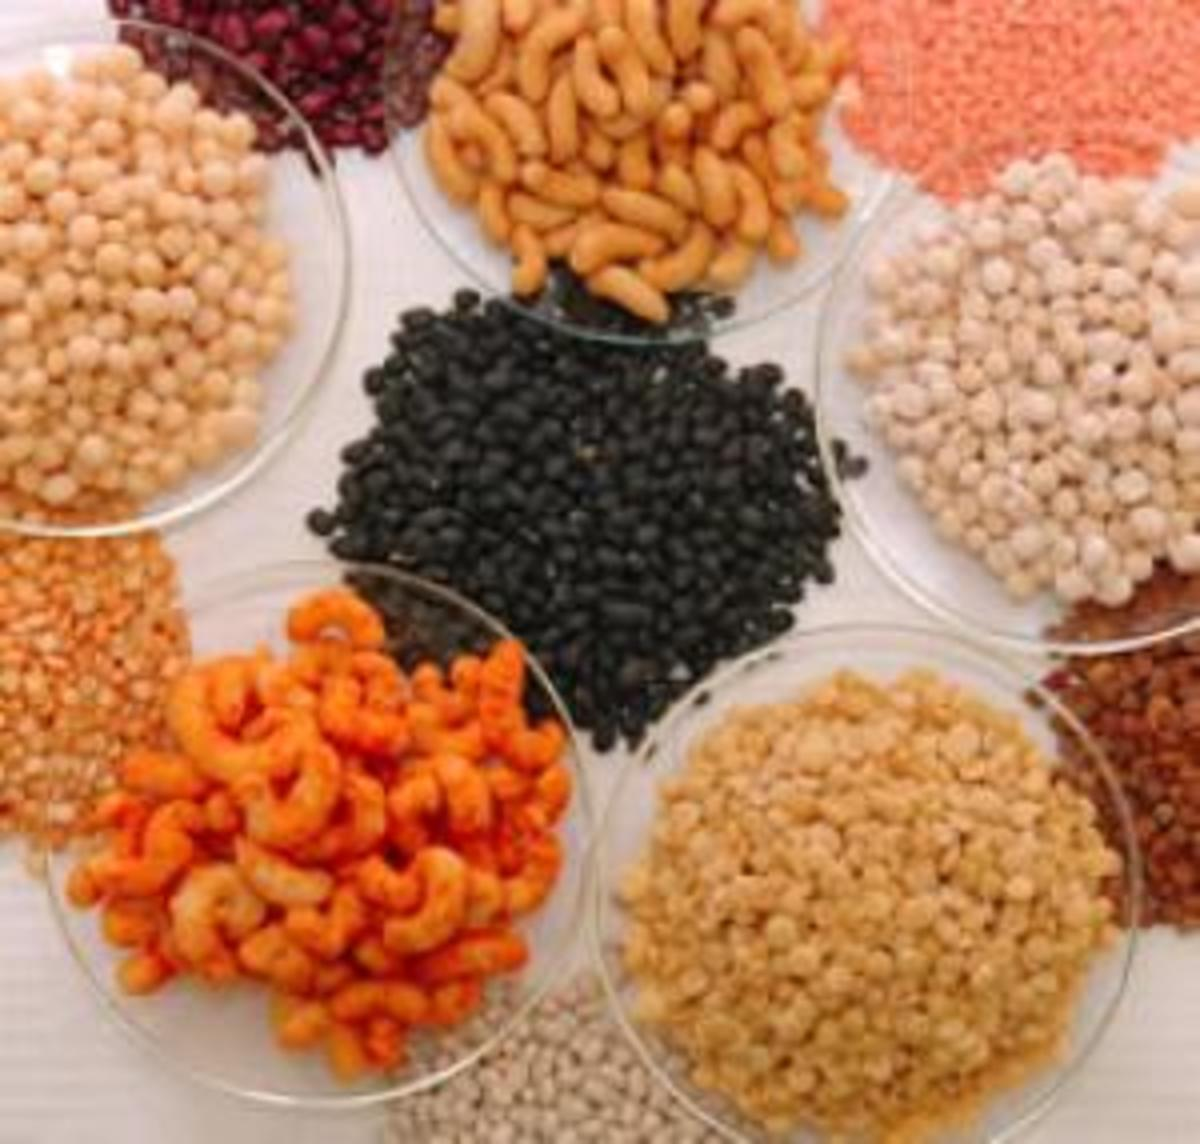 High protein snacks - Chick peas, dry peas, lentils and beans